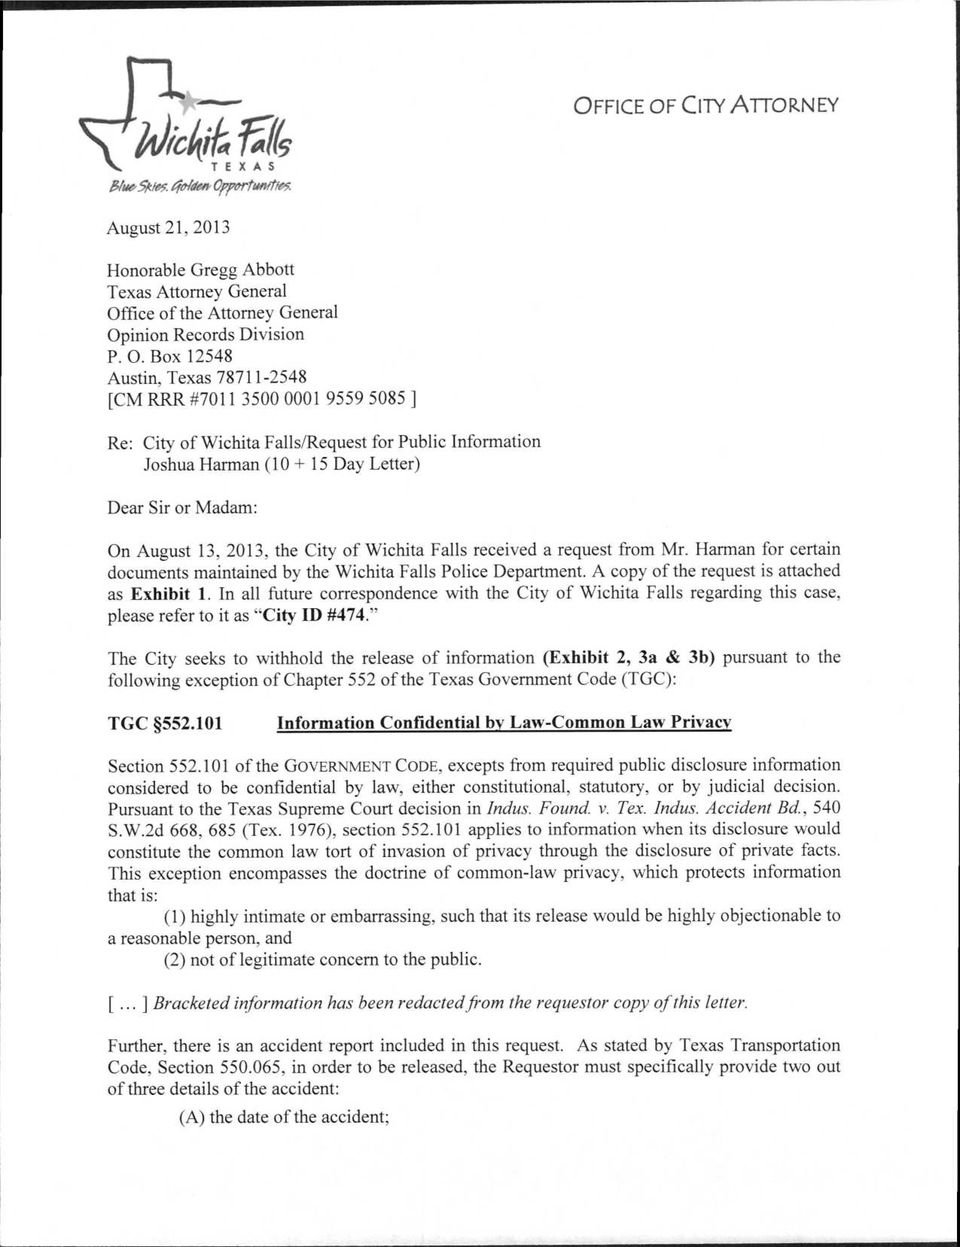 2013, the City of Wichita Falls received a request from Mr. Harman for certain documents maintained by the Wichita Falls Police Department. A copy of the request is attached as Exhibit 1.